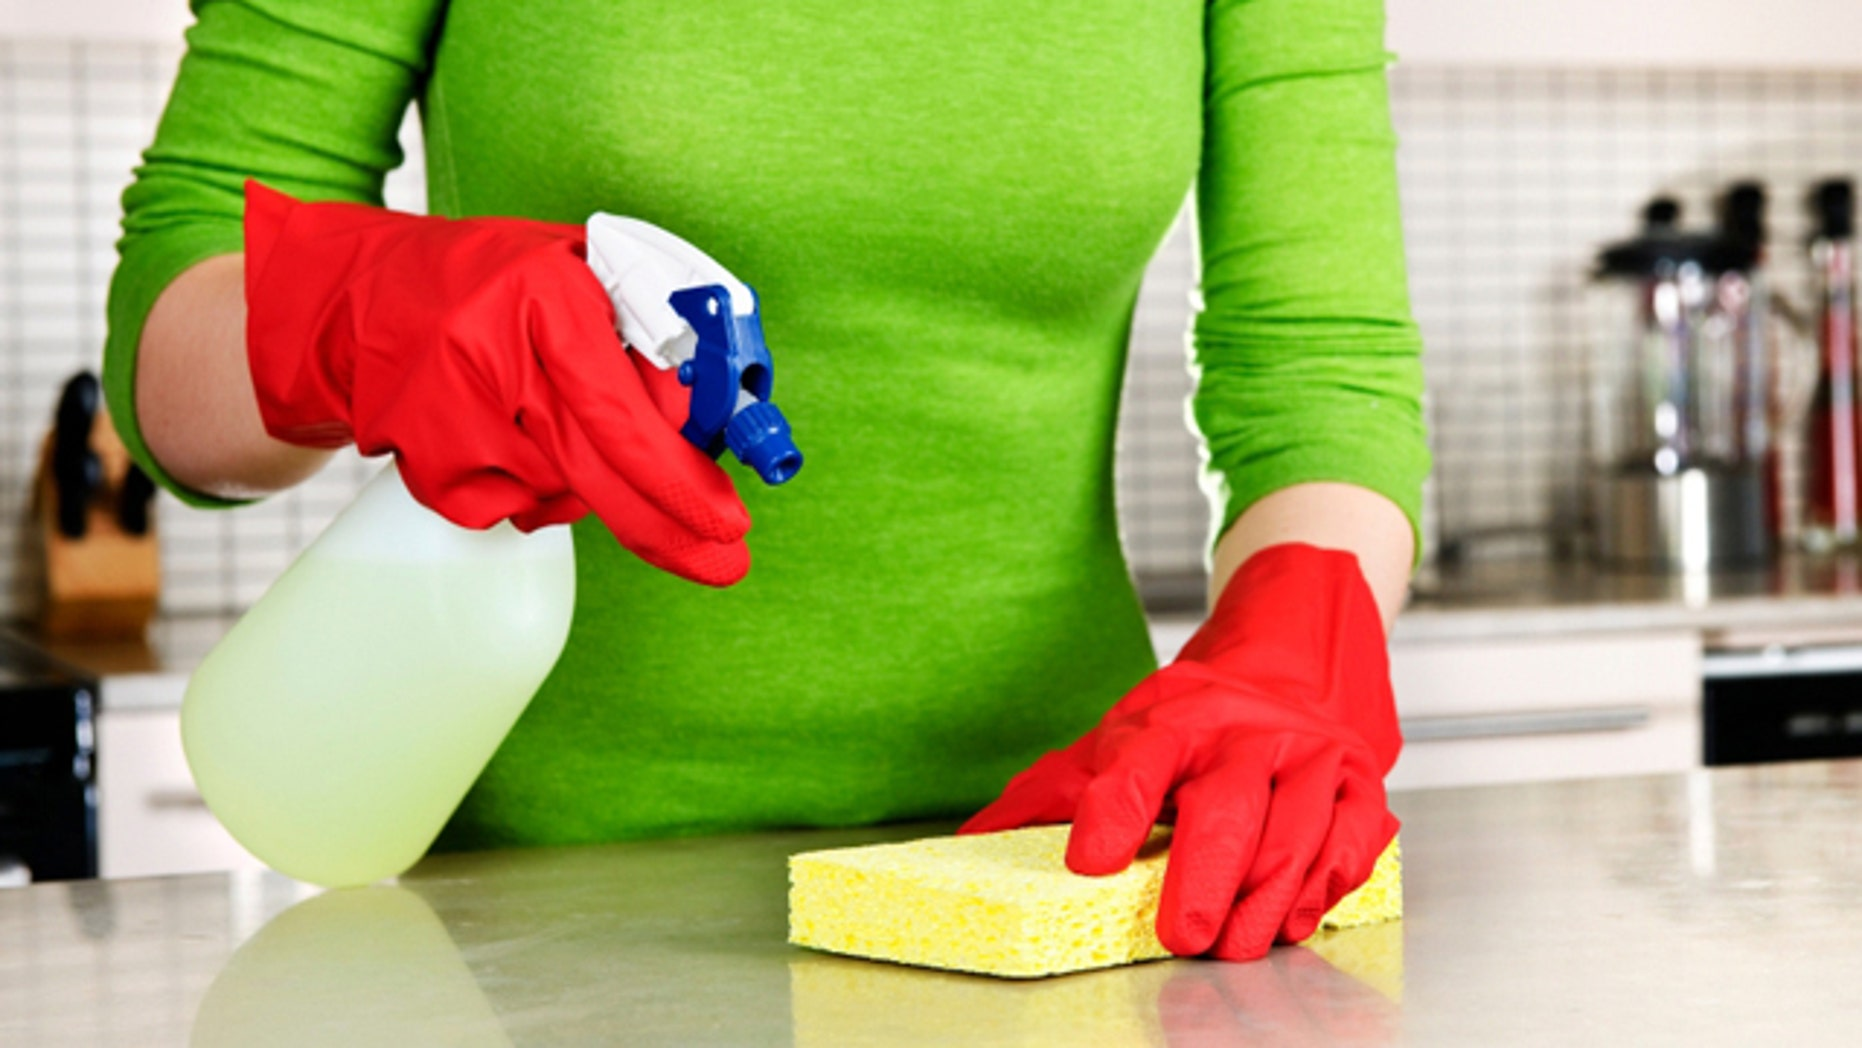 10 signs you may have obsessive-compulsive disorder | Fox News